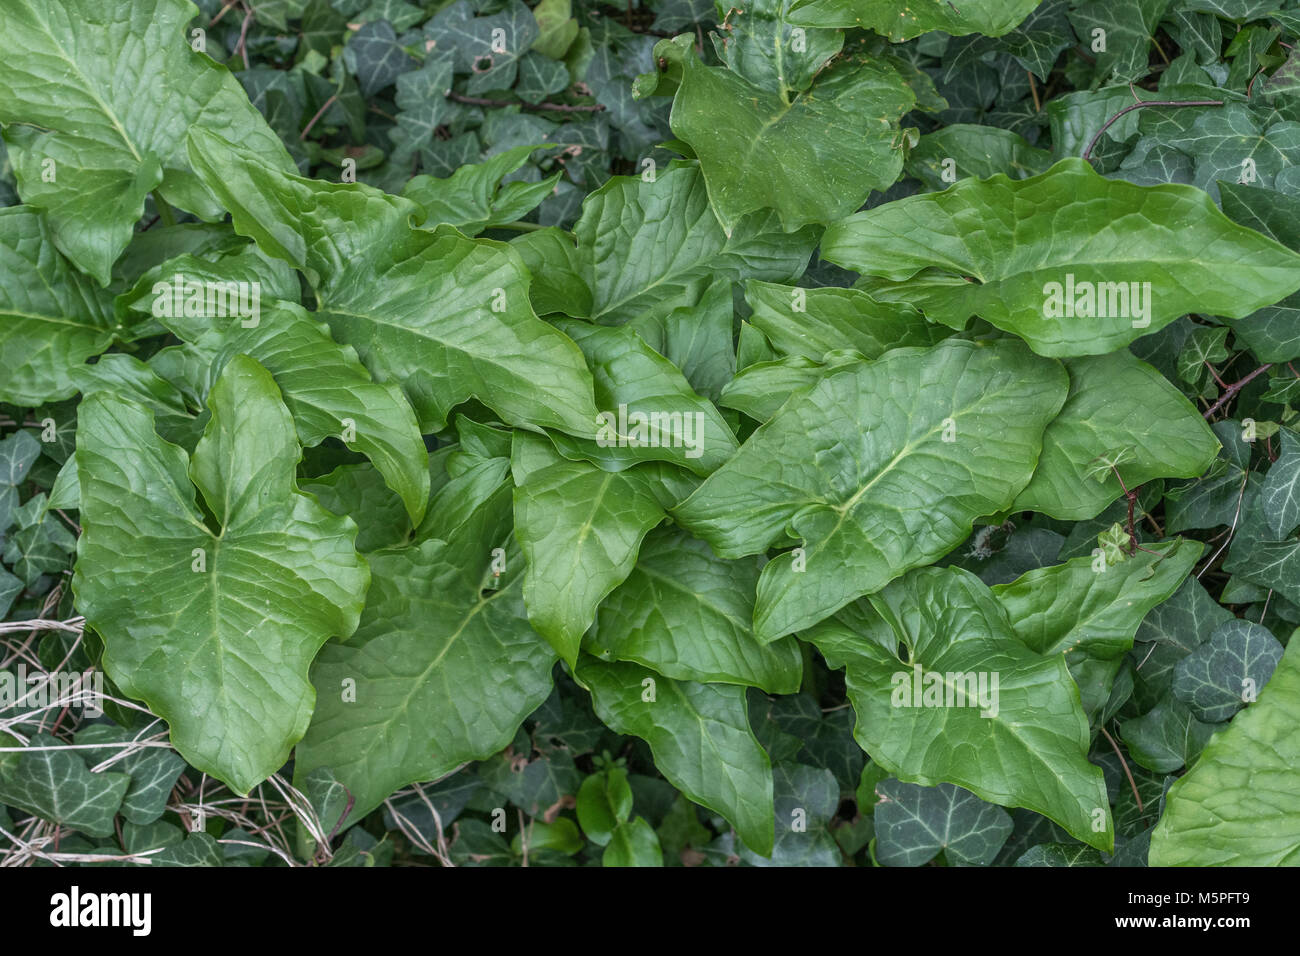 Early foliage of Lords and Ladies / Cuckoopint (Arum maculatum). - Stock Image